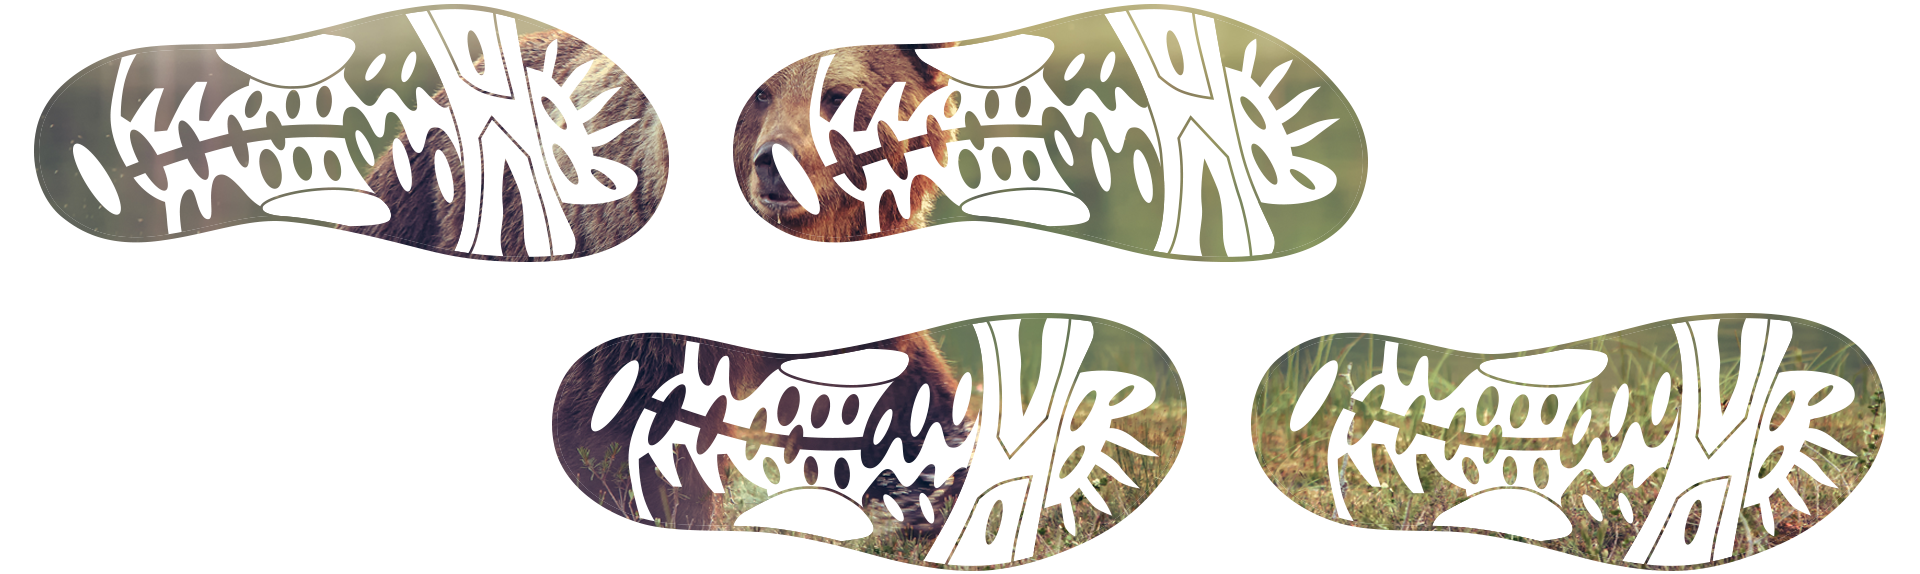 footprints with image of brown bear inside